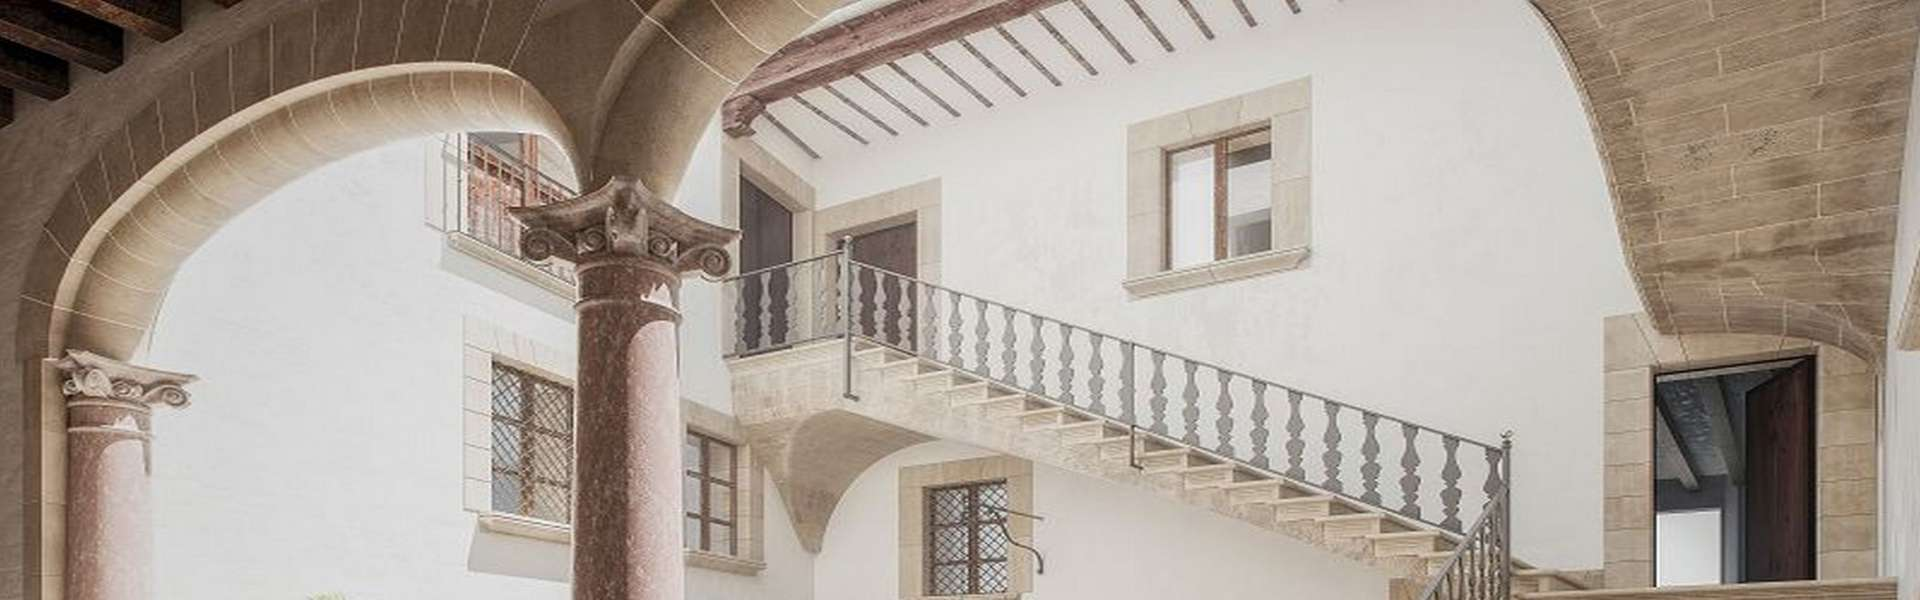 Palma/Centre - Elegant apartment in a mansion from the 16th century